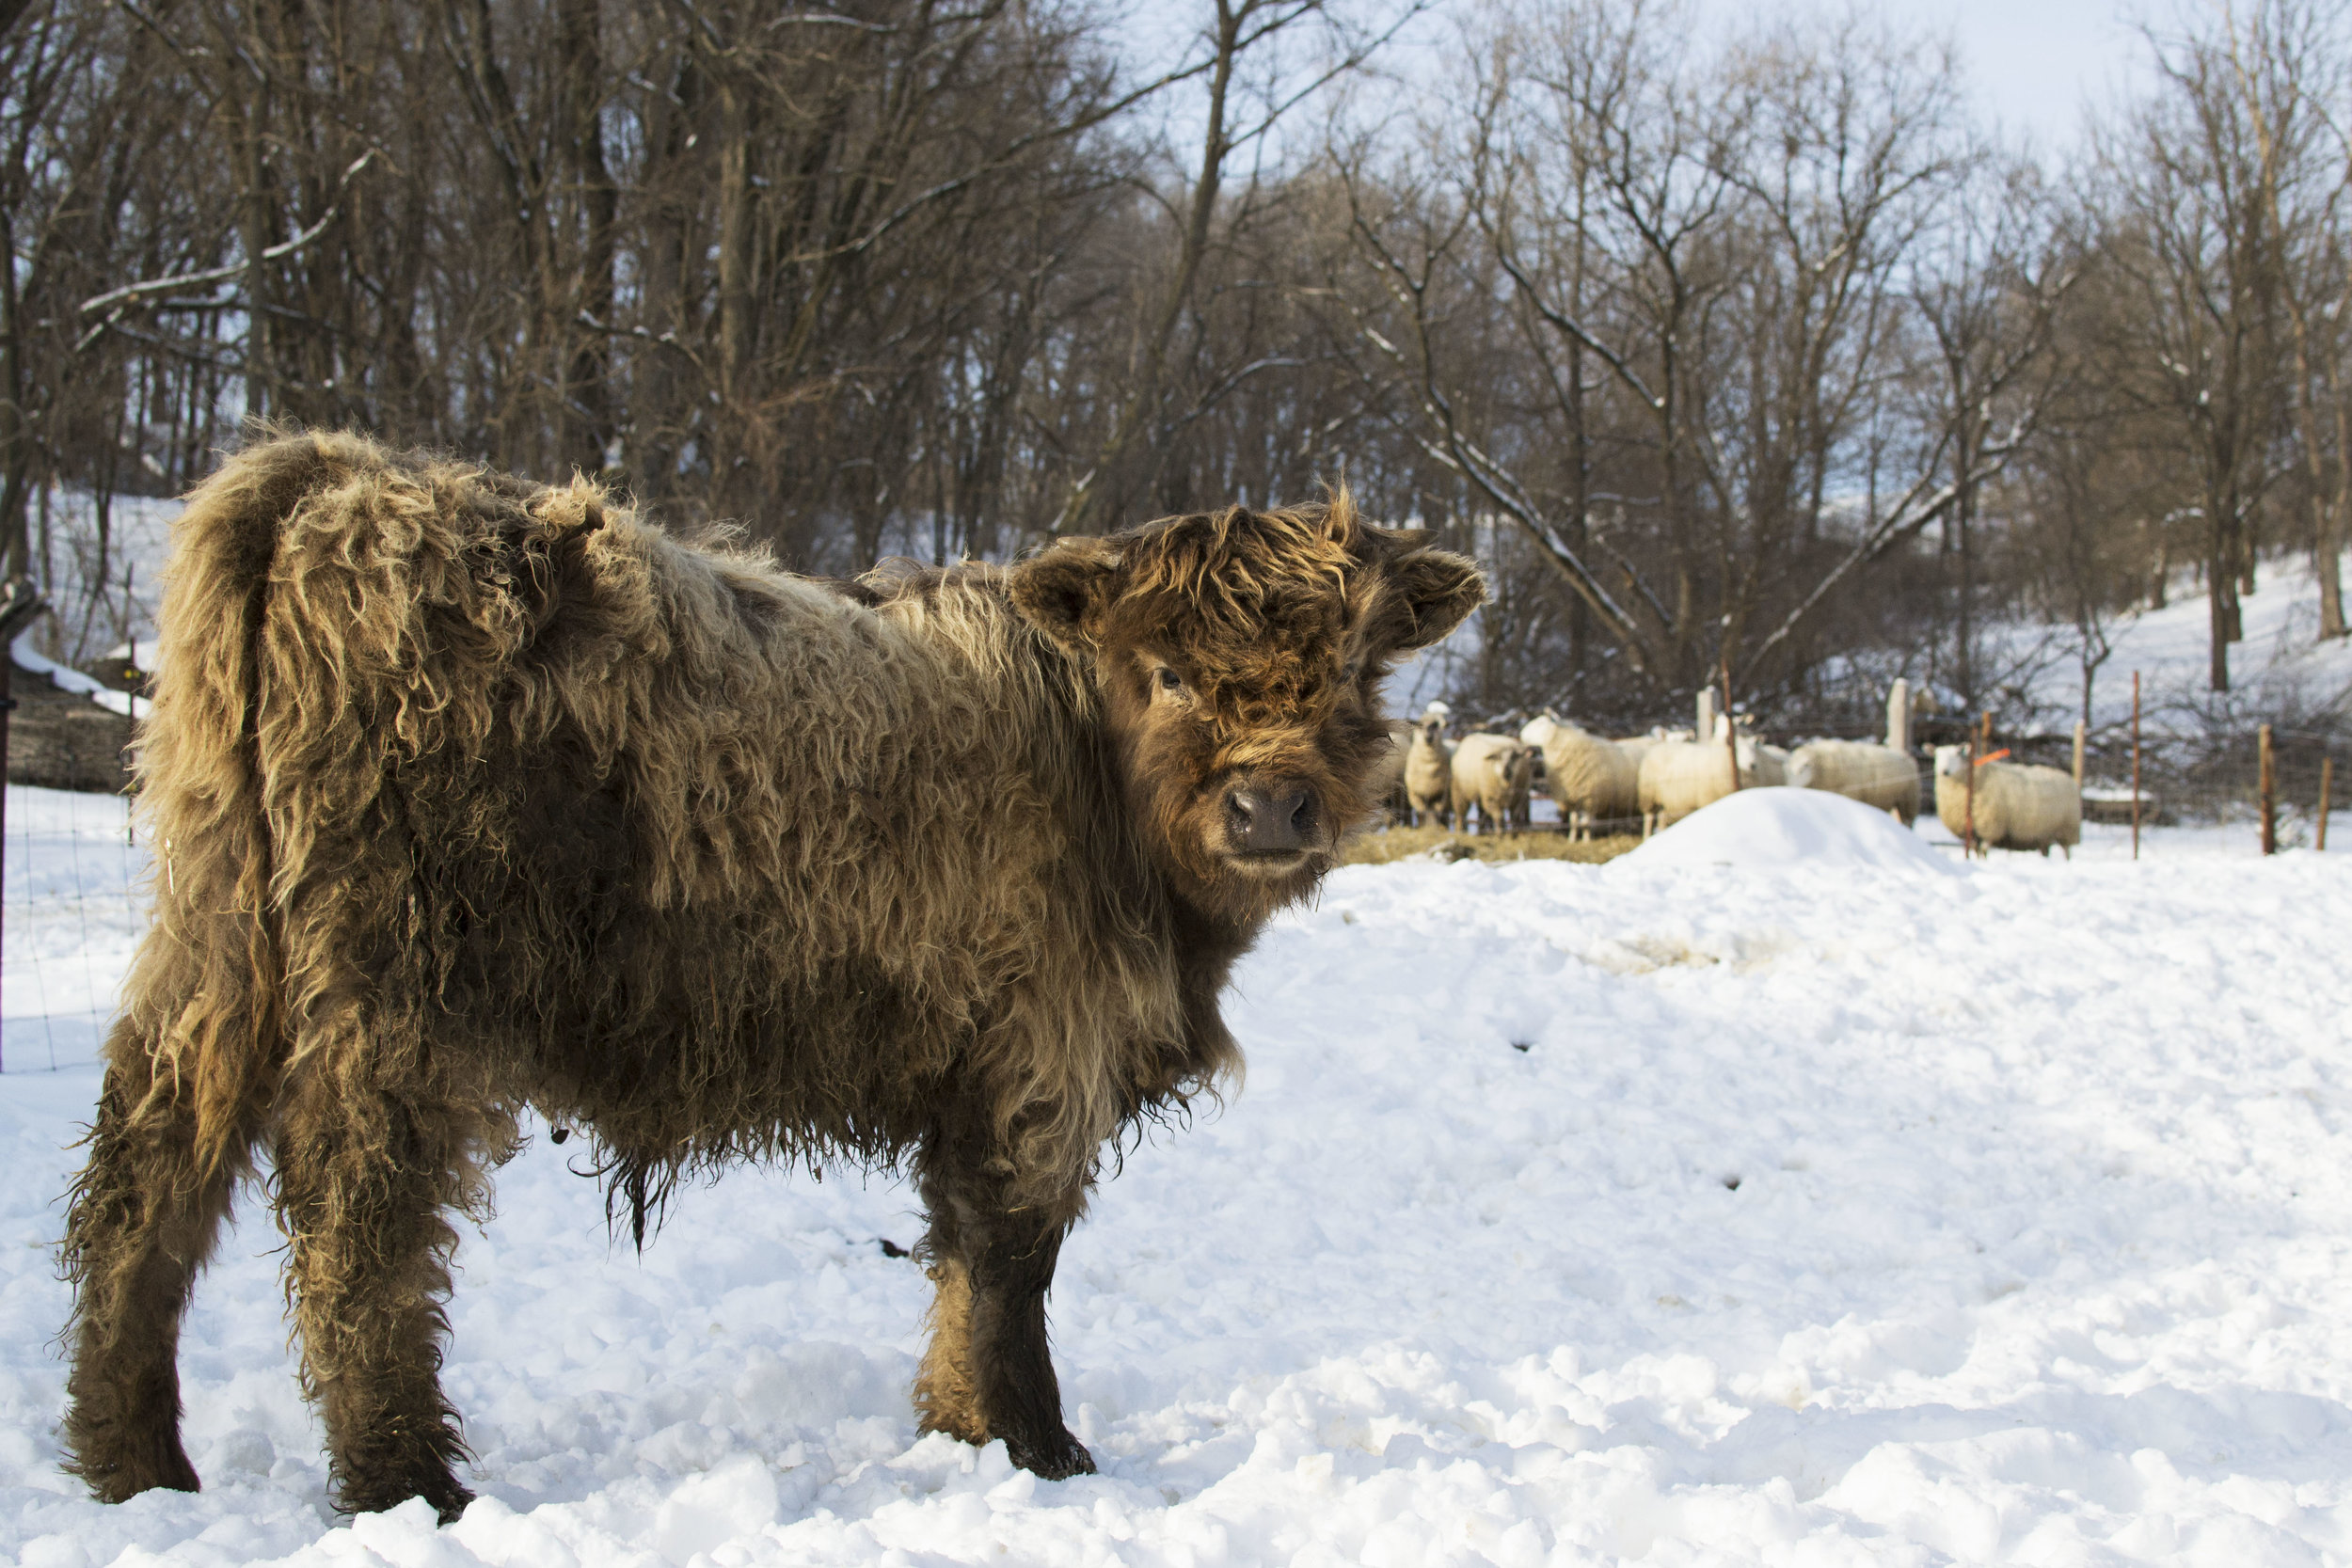 free delivery - grass-fed beef and lamb madison wisconsin - humane farm - grassfed